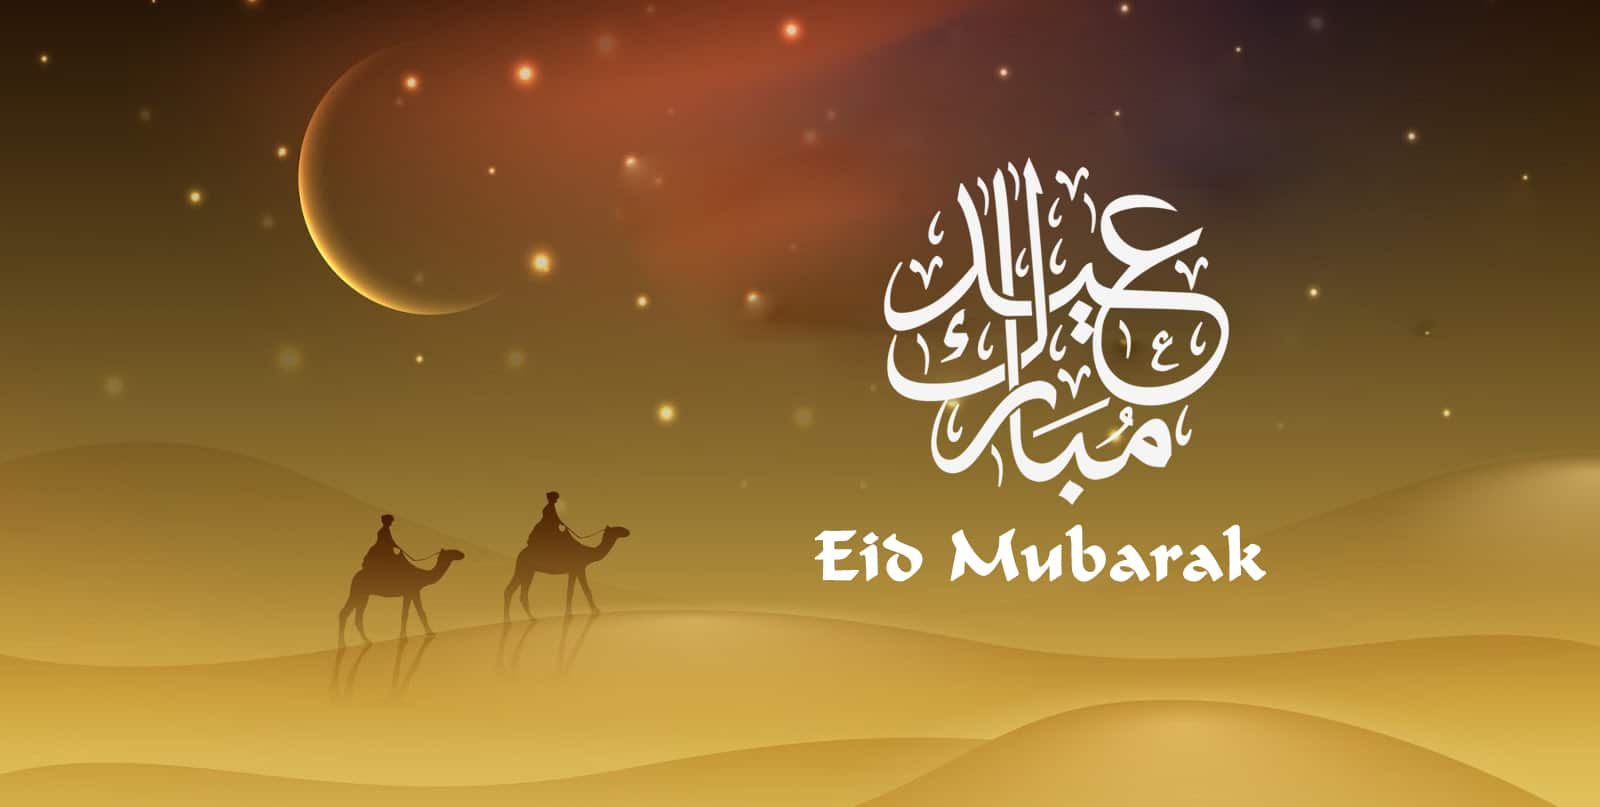 Eid al adha Quotes Mubarak Wallpaper